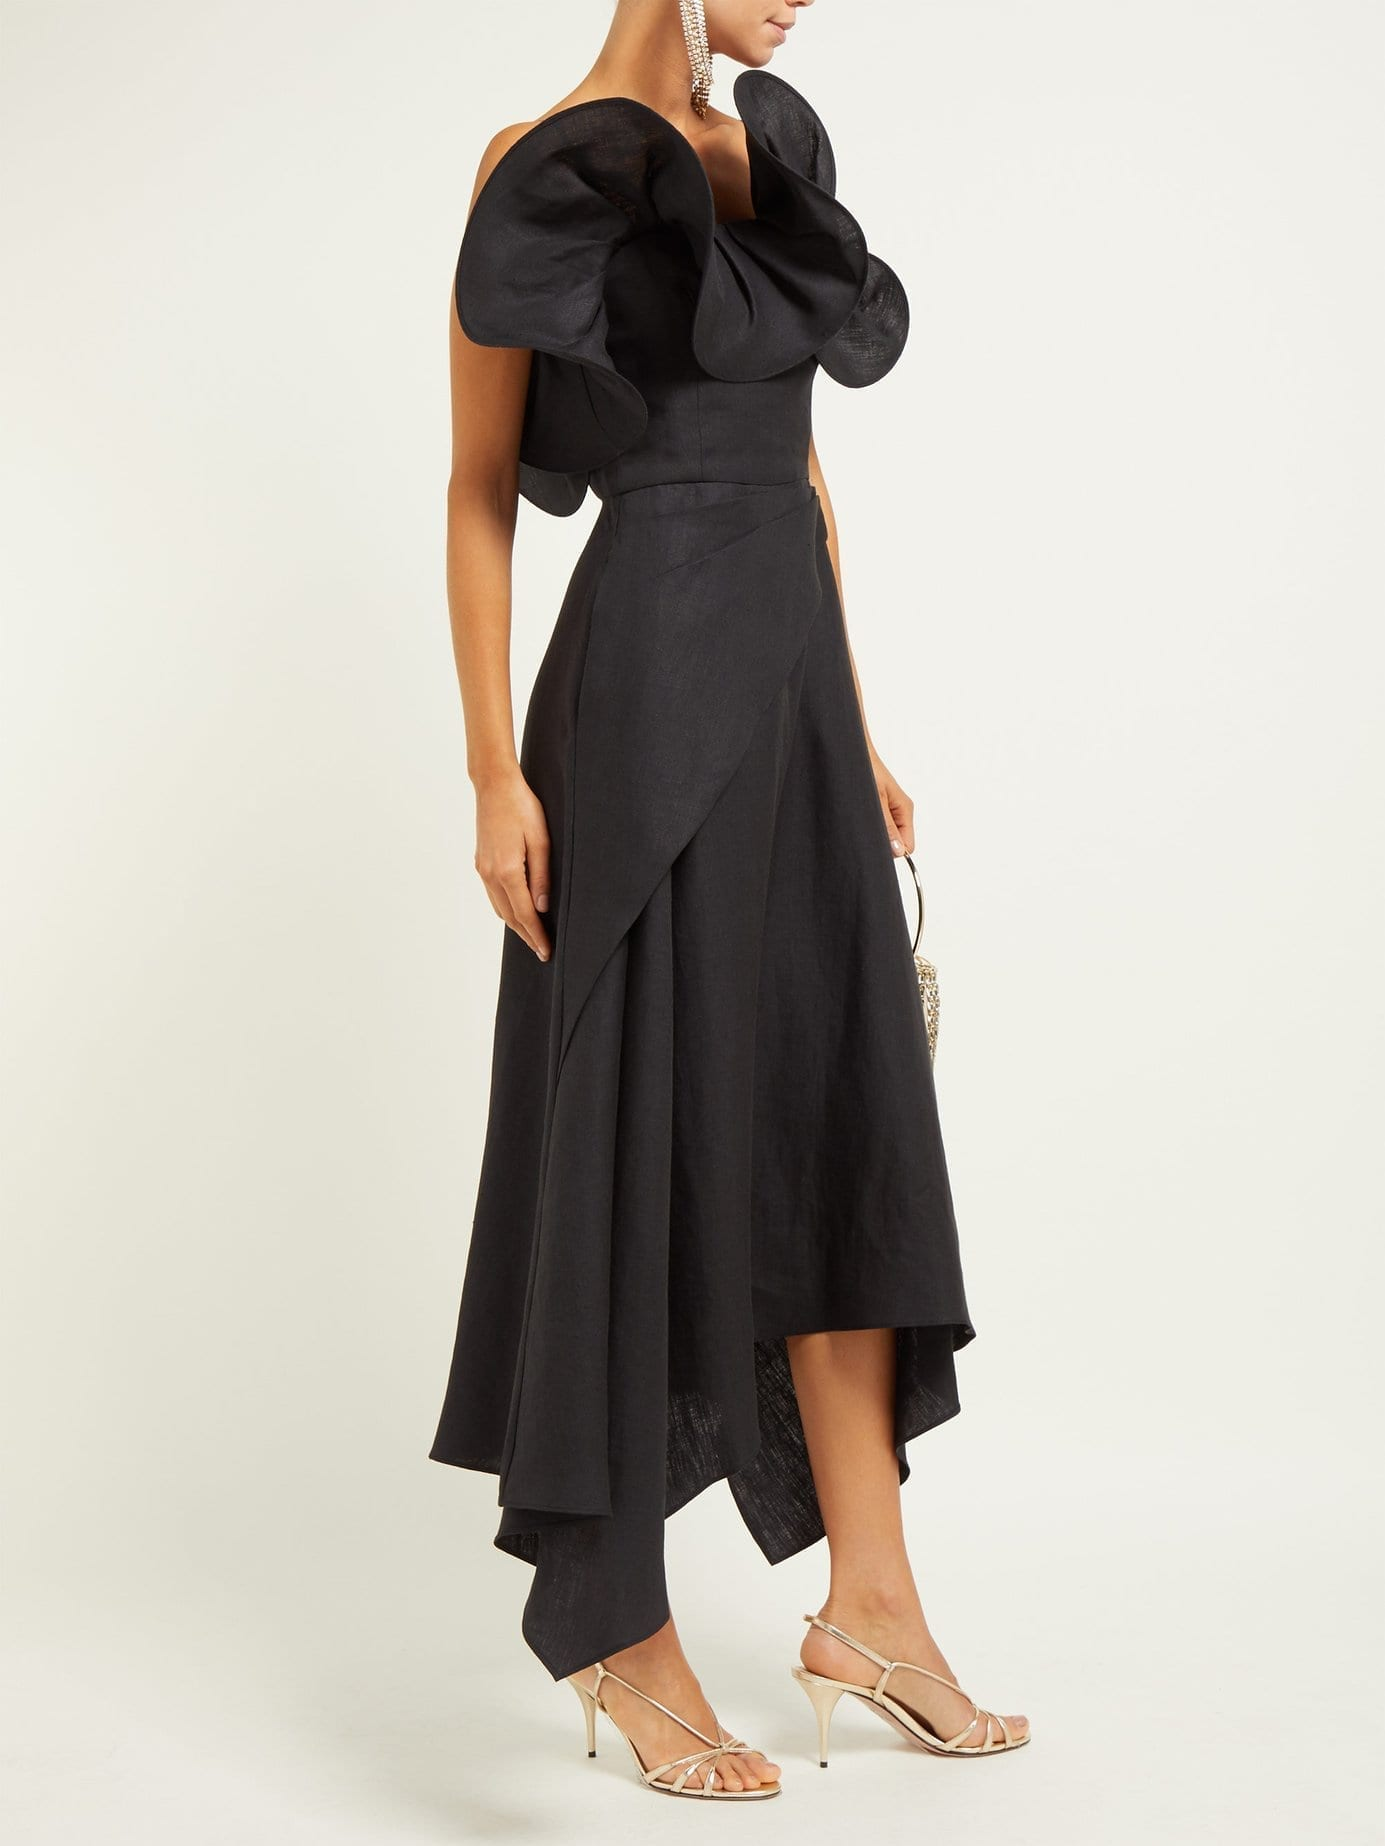 OSMAN Julie Ruffle-Bodice Linen Midi Black Dress